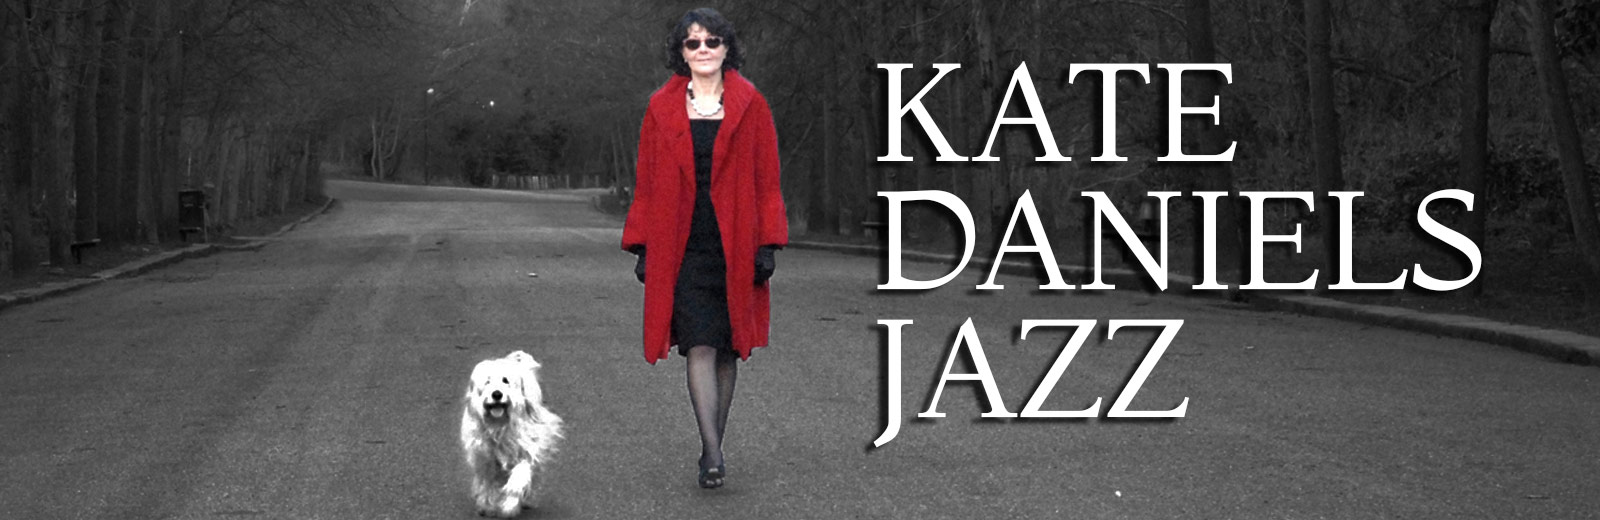 Kate Daniels Jazz